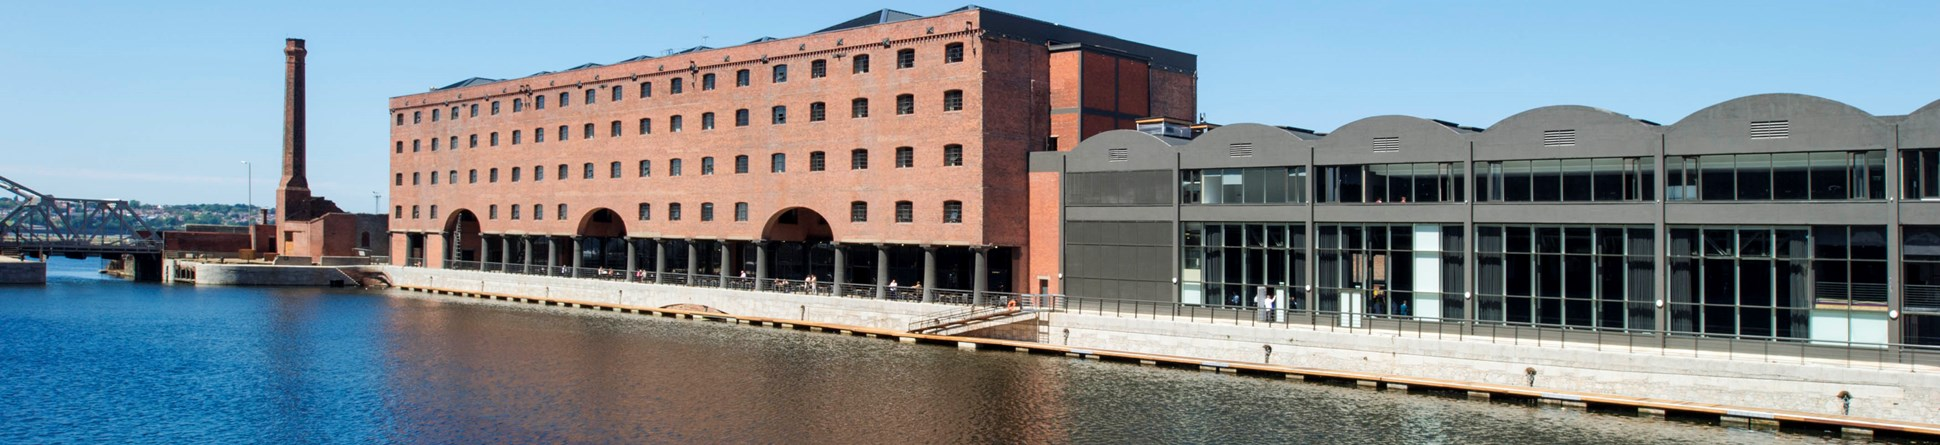 Stanley dock and warehouses, Liverpool